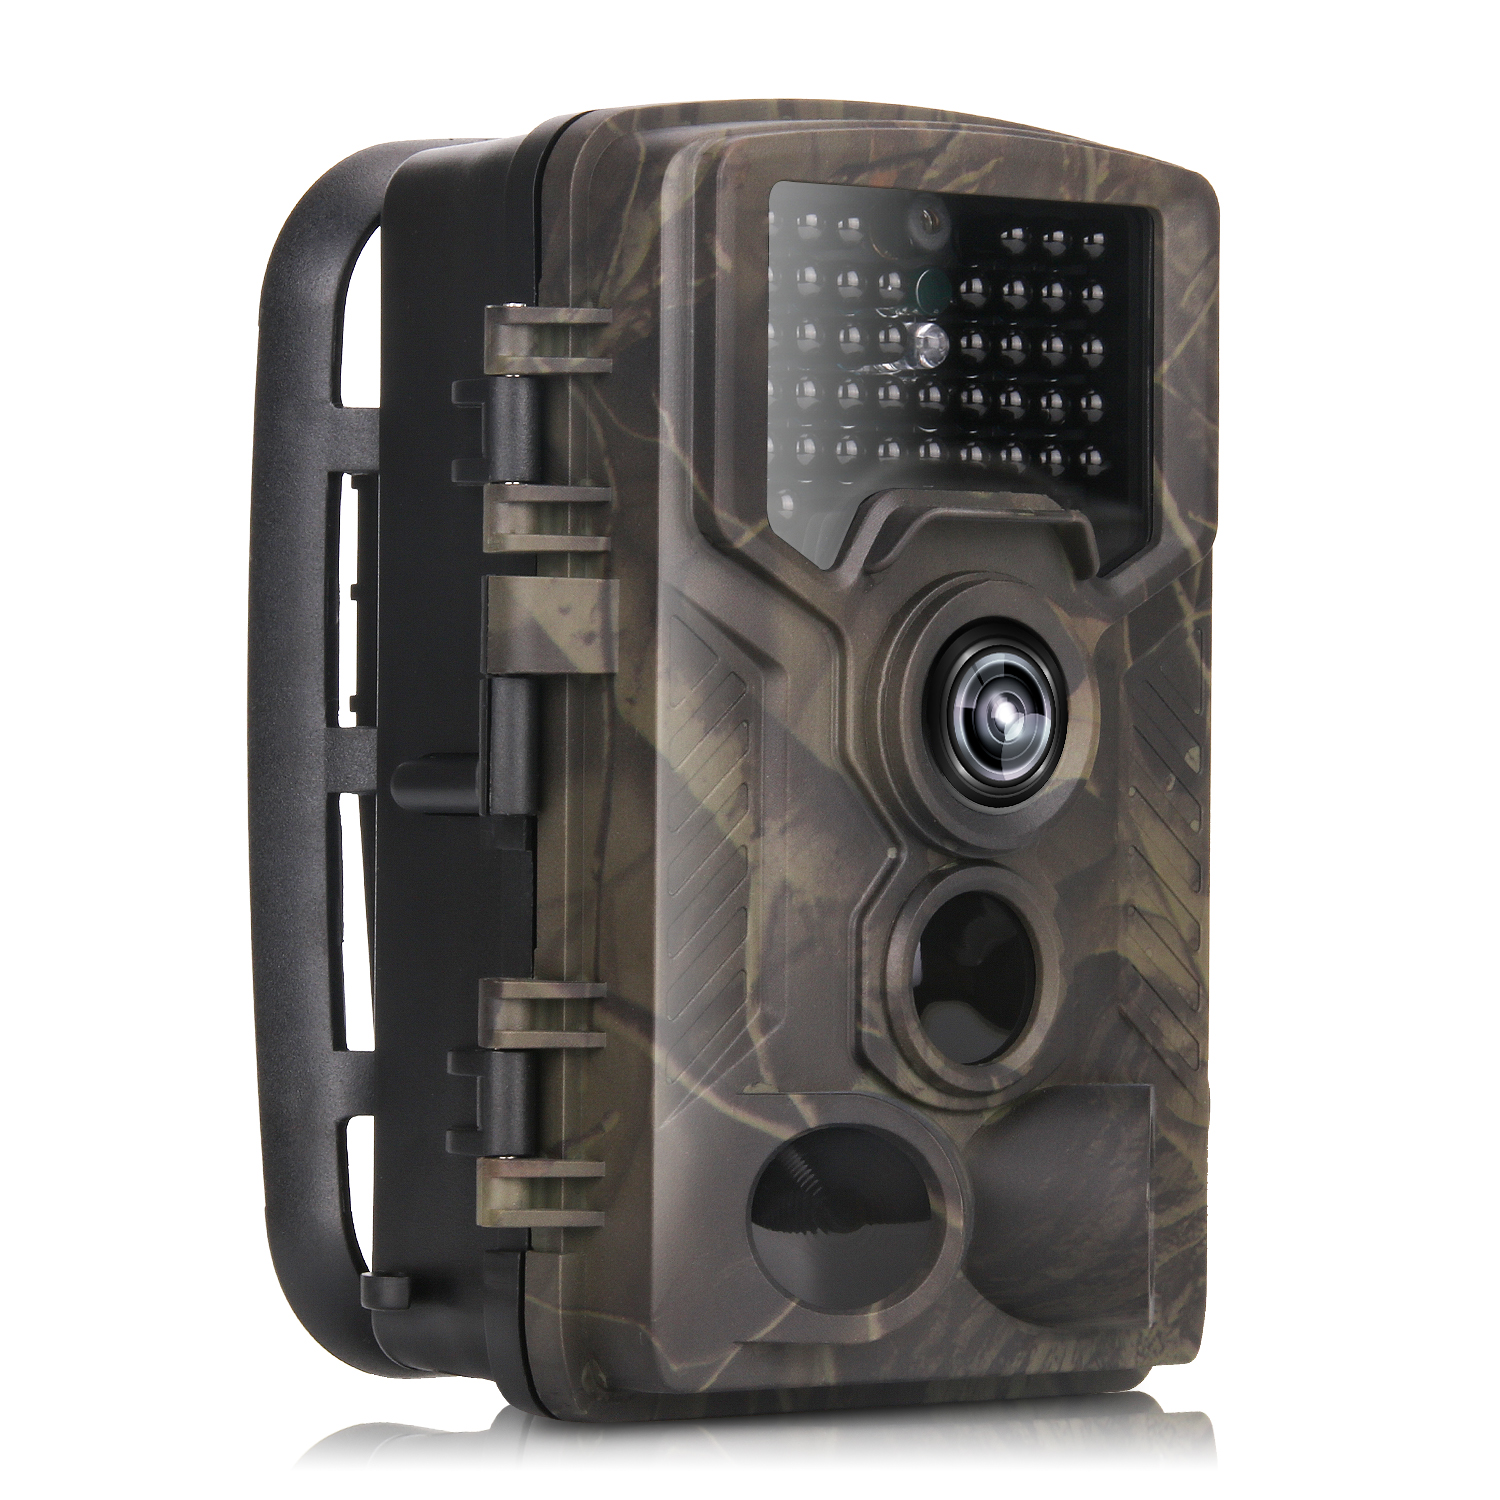 4G Hunting Trail Camera.jpg